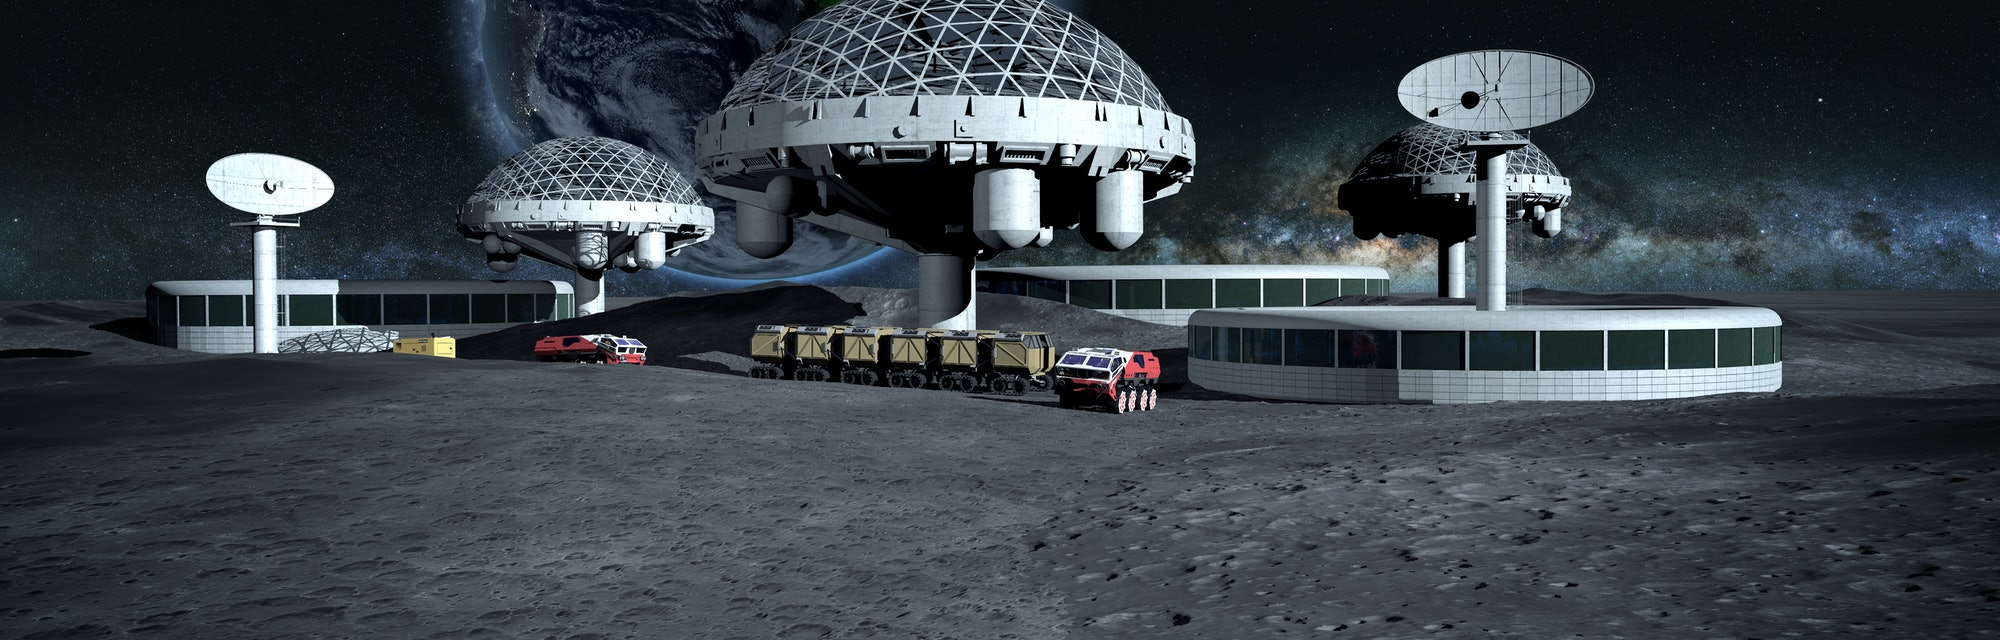 futuristic city, base, town on moon. The space view of the planet earth. expedition. 3d rendering. Elements of this image furnished by NASA